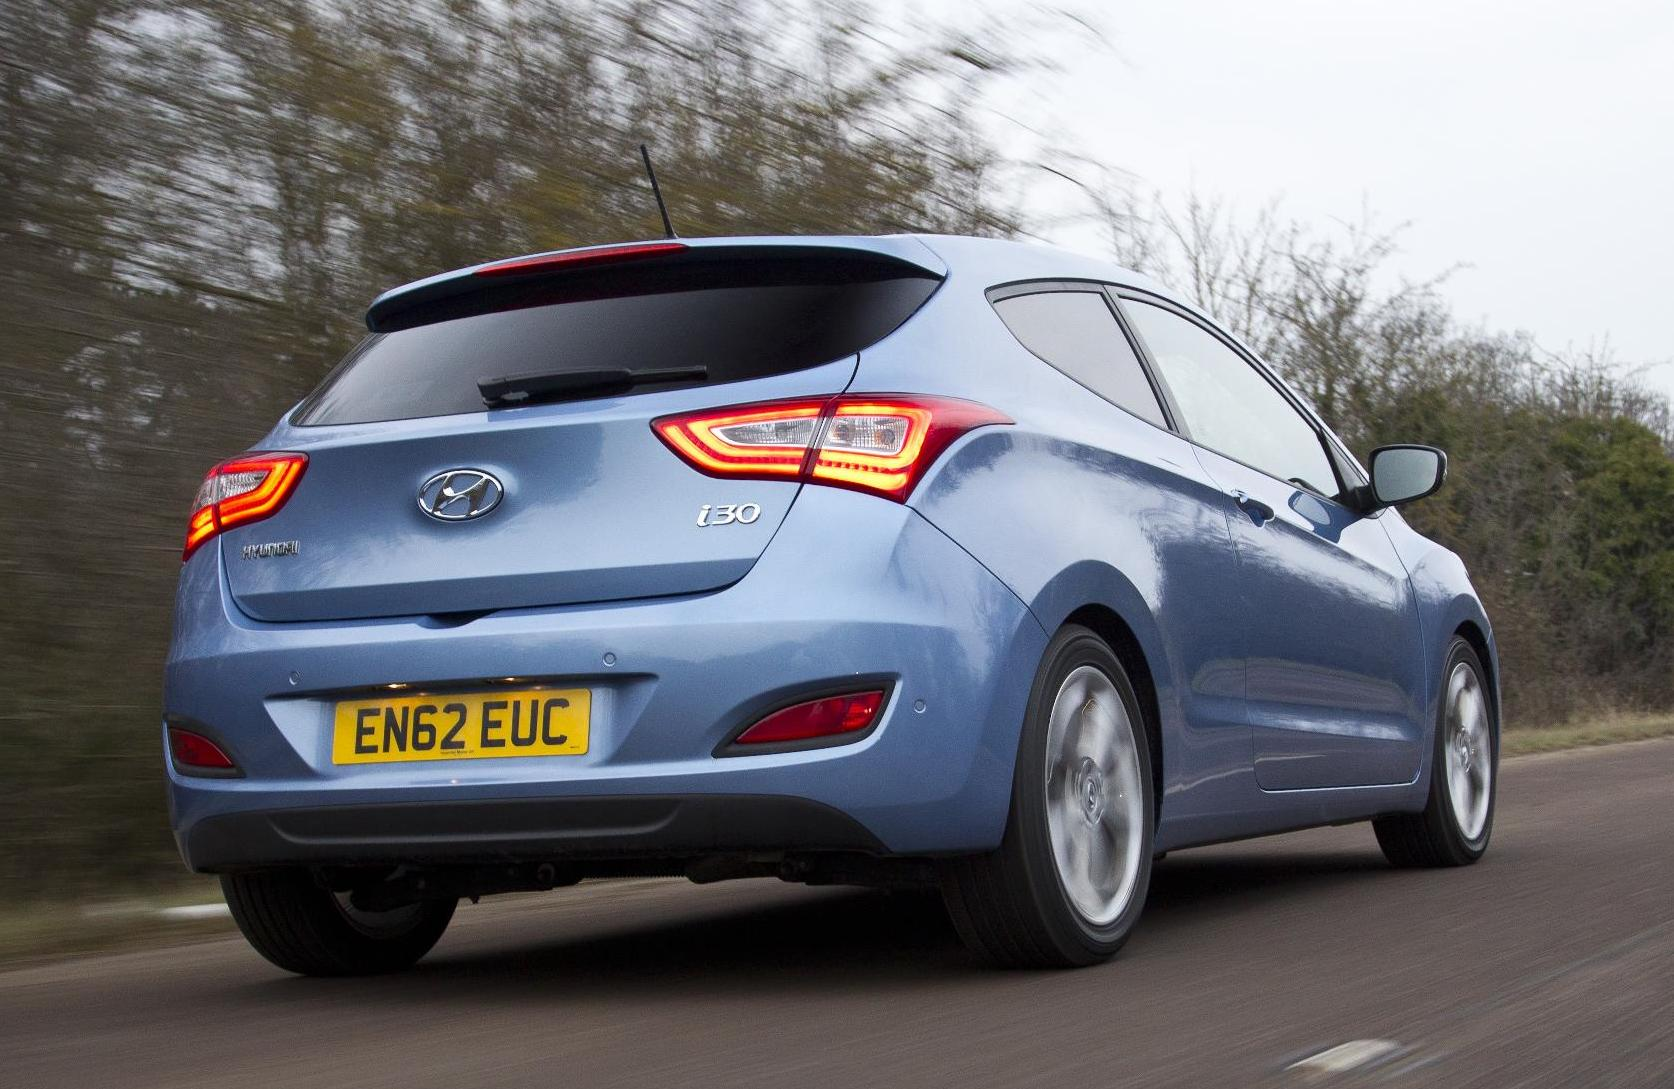 hyundai i30 rear side - india car news